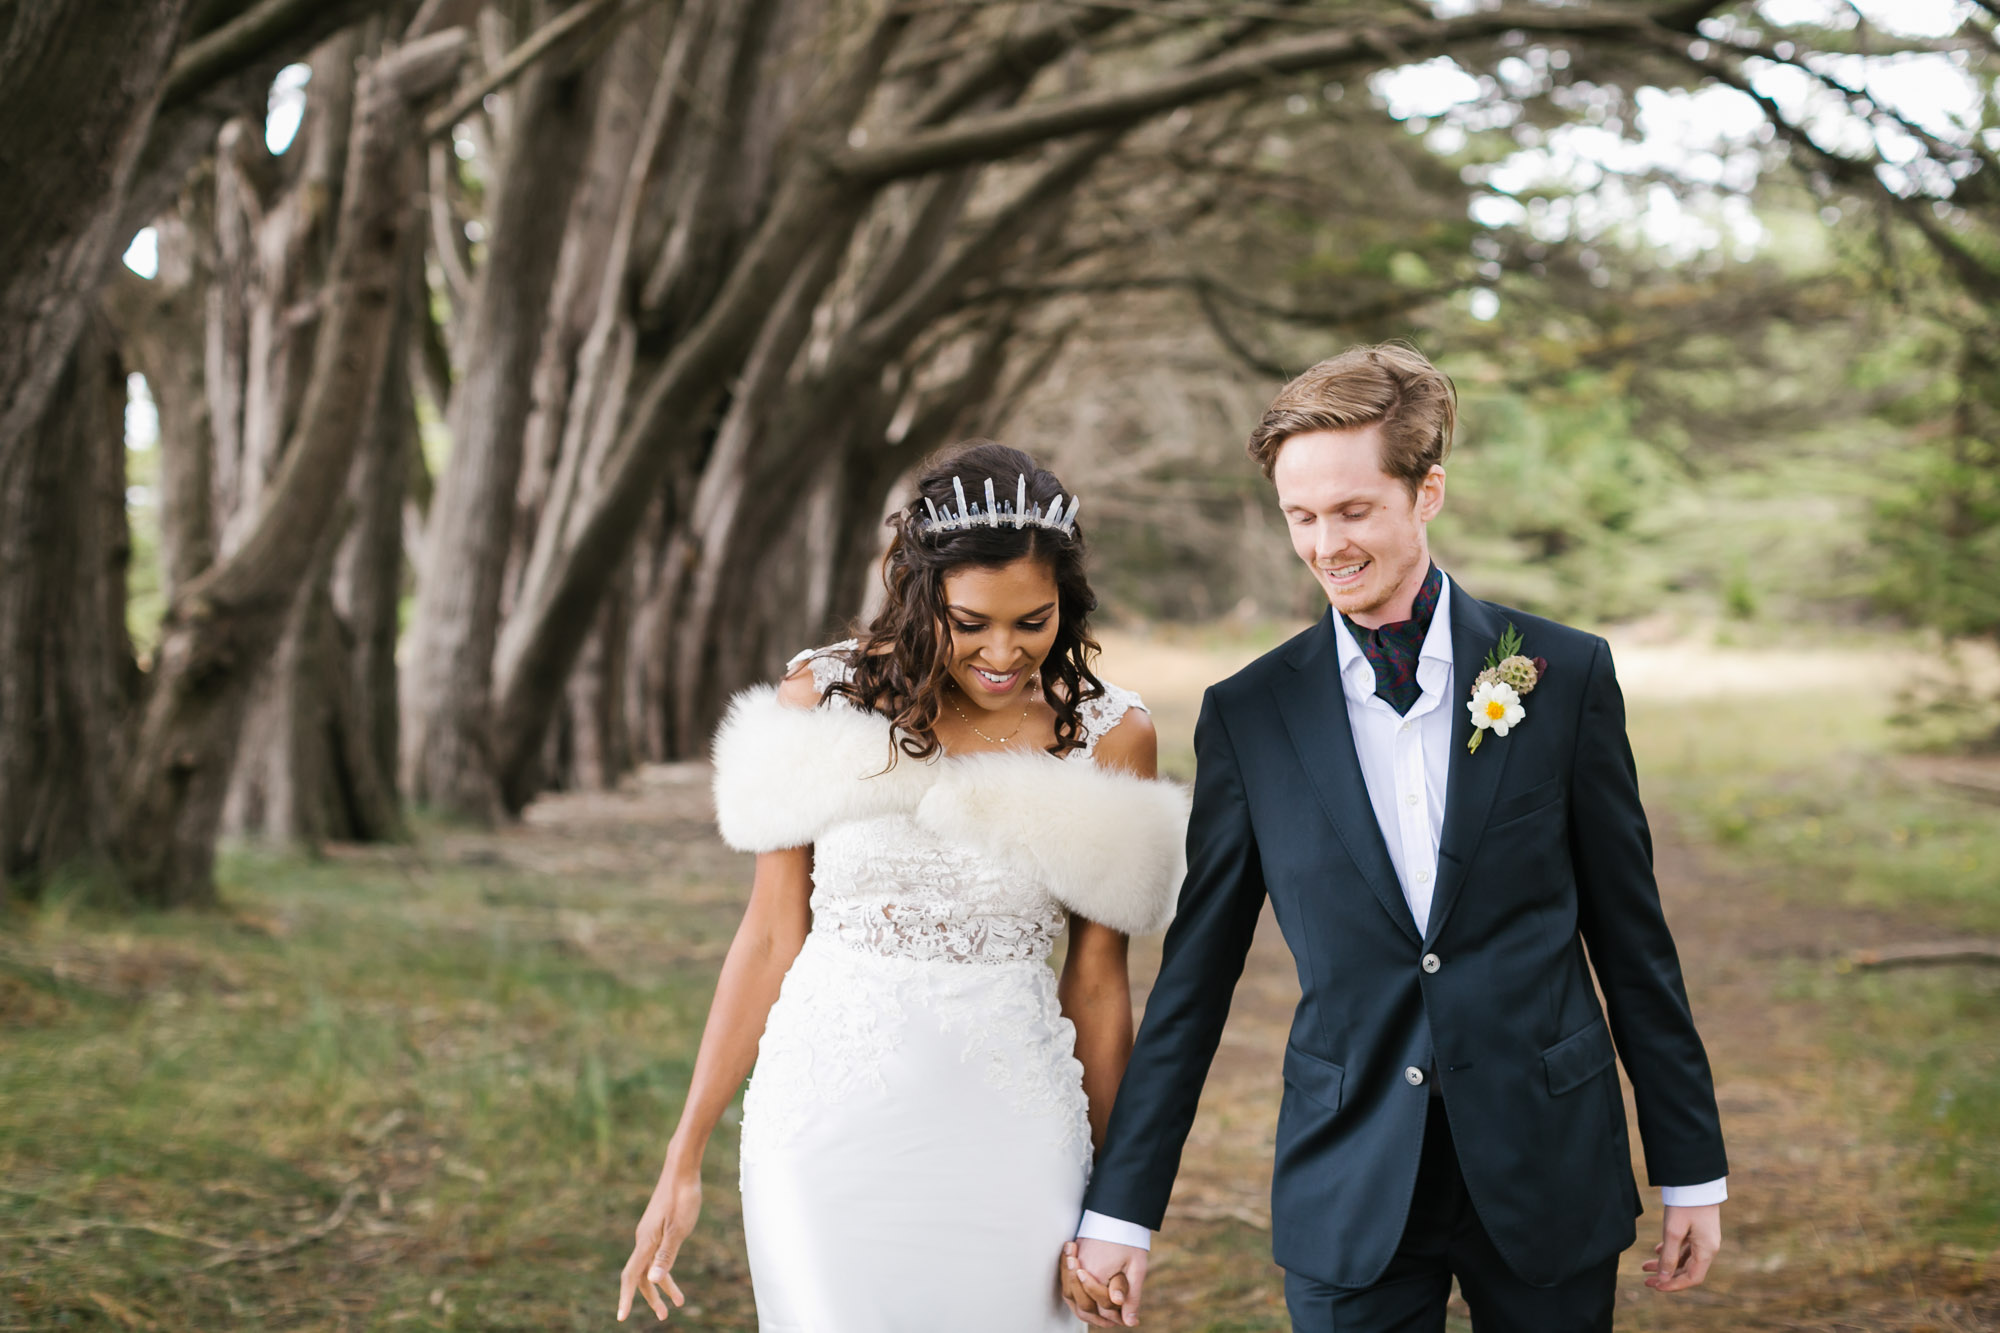 Bride wearing crystal crown and white fur stole walks holding hands with her husband